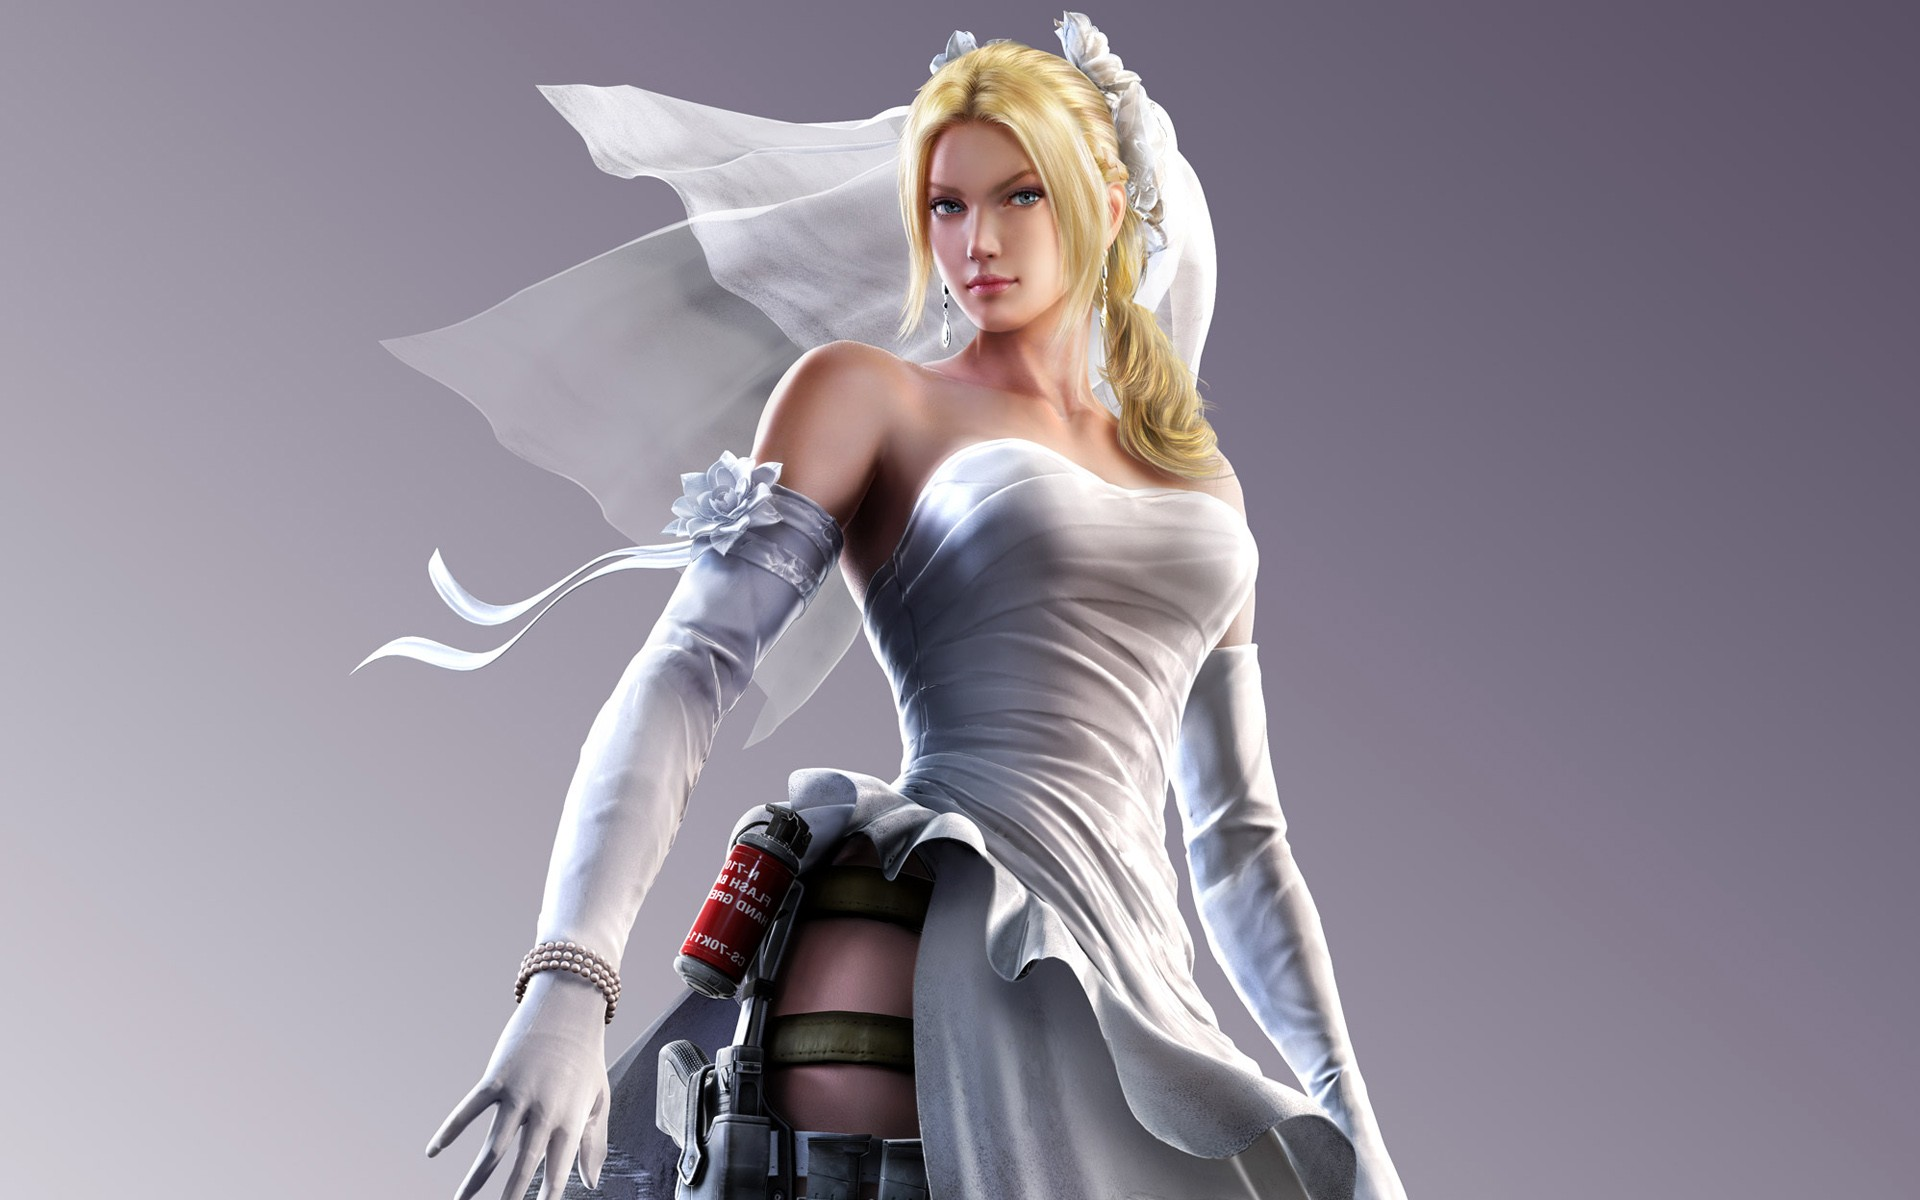 Street Fighter X Tekken Nina Williams Hd Fantasy Girls 4k Wallpapers Images Backgrounds Photos And Pictures